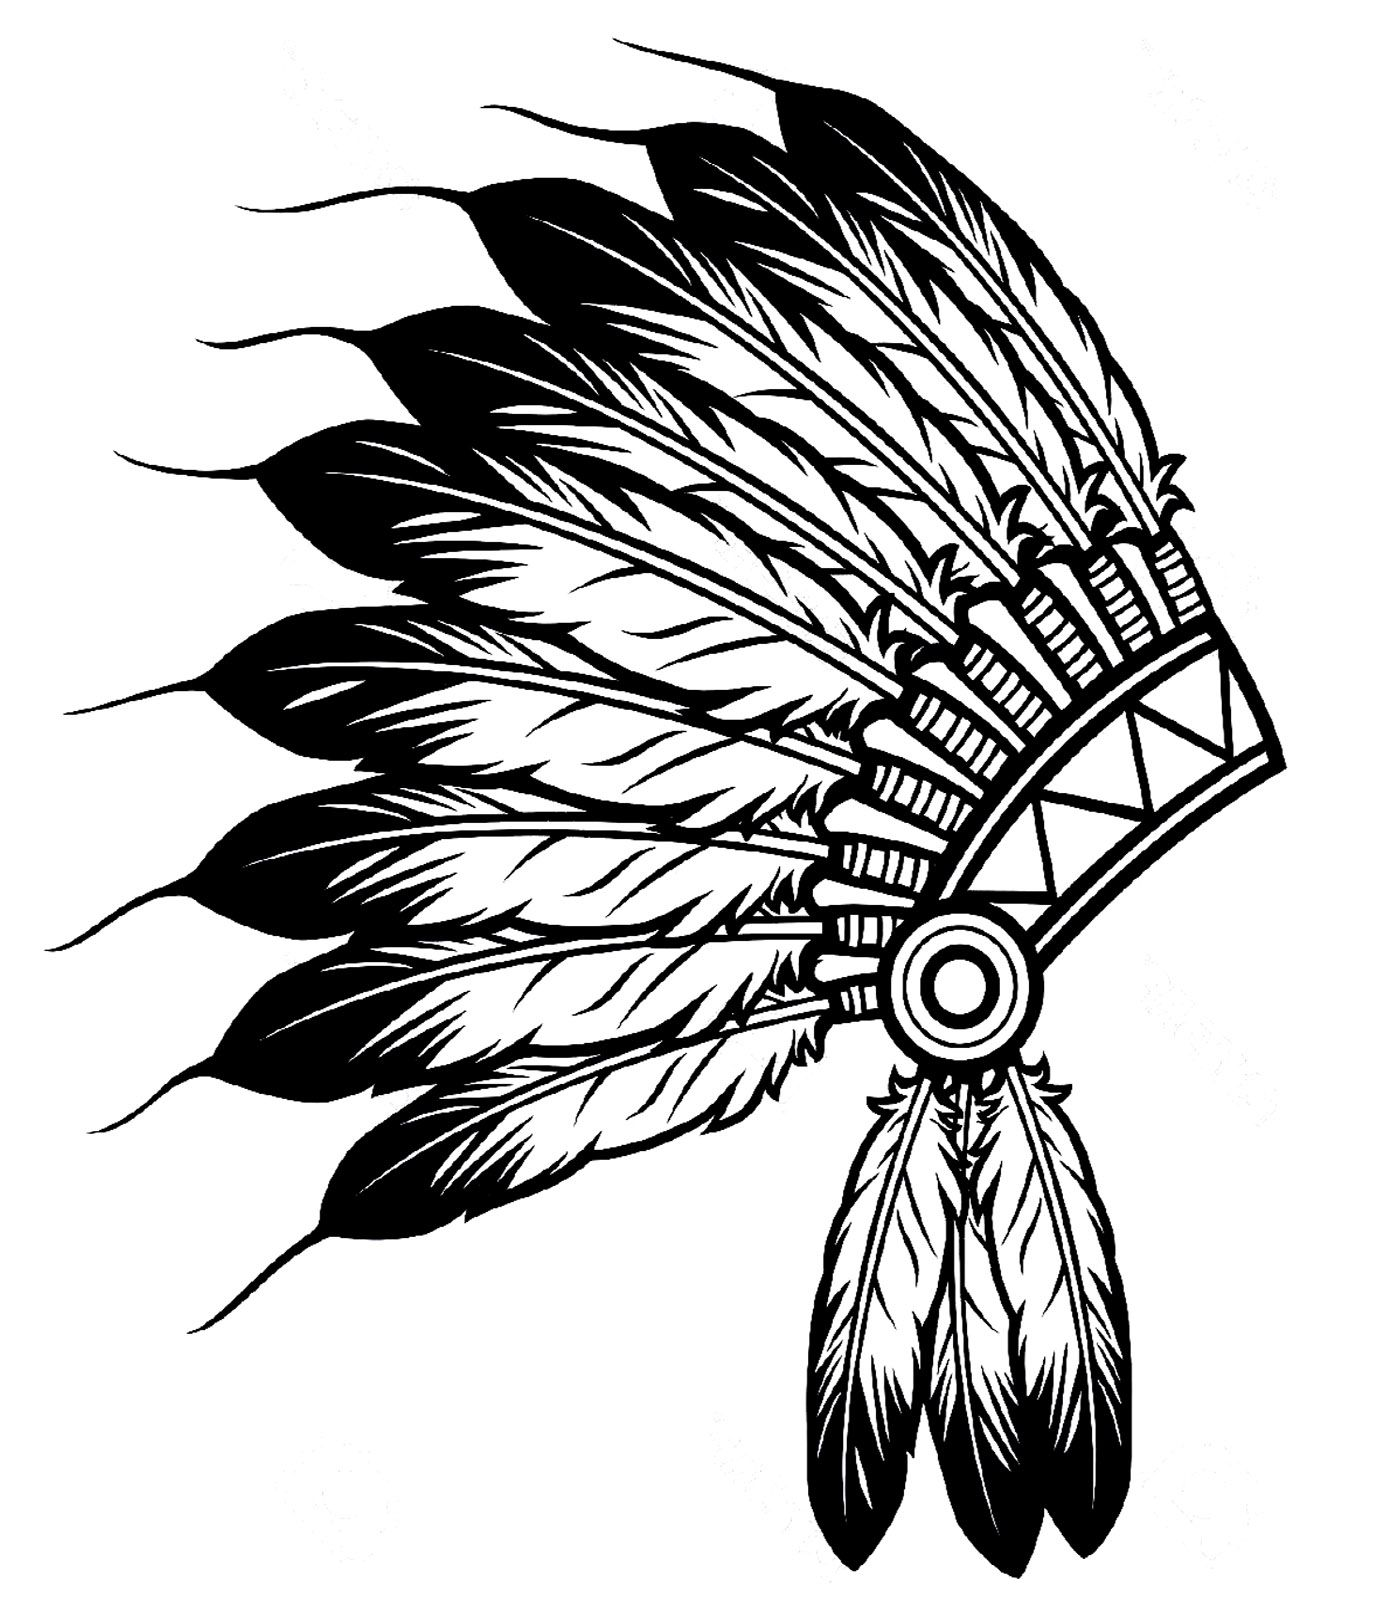 coloring pages cherokee indians - photo#10